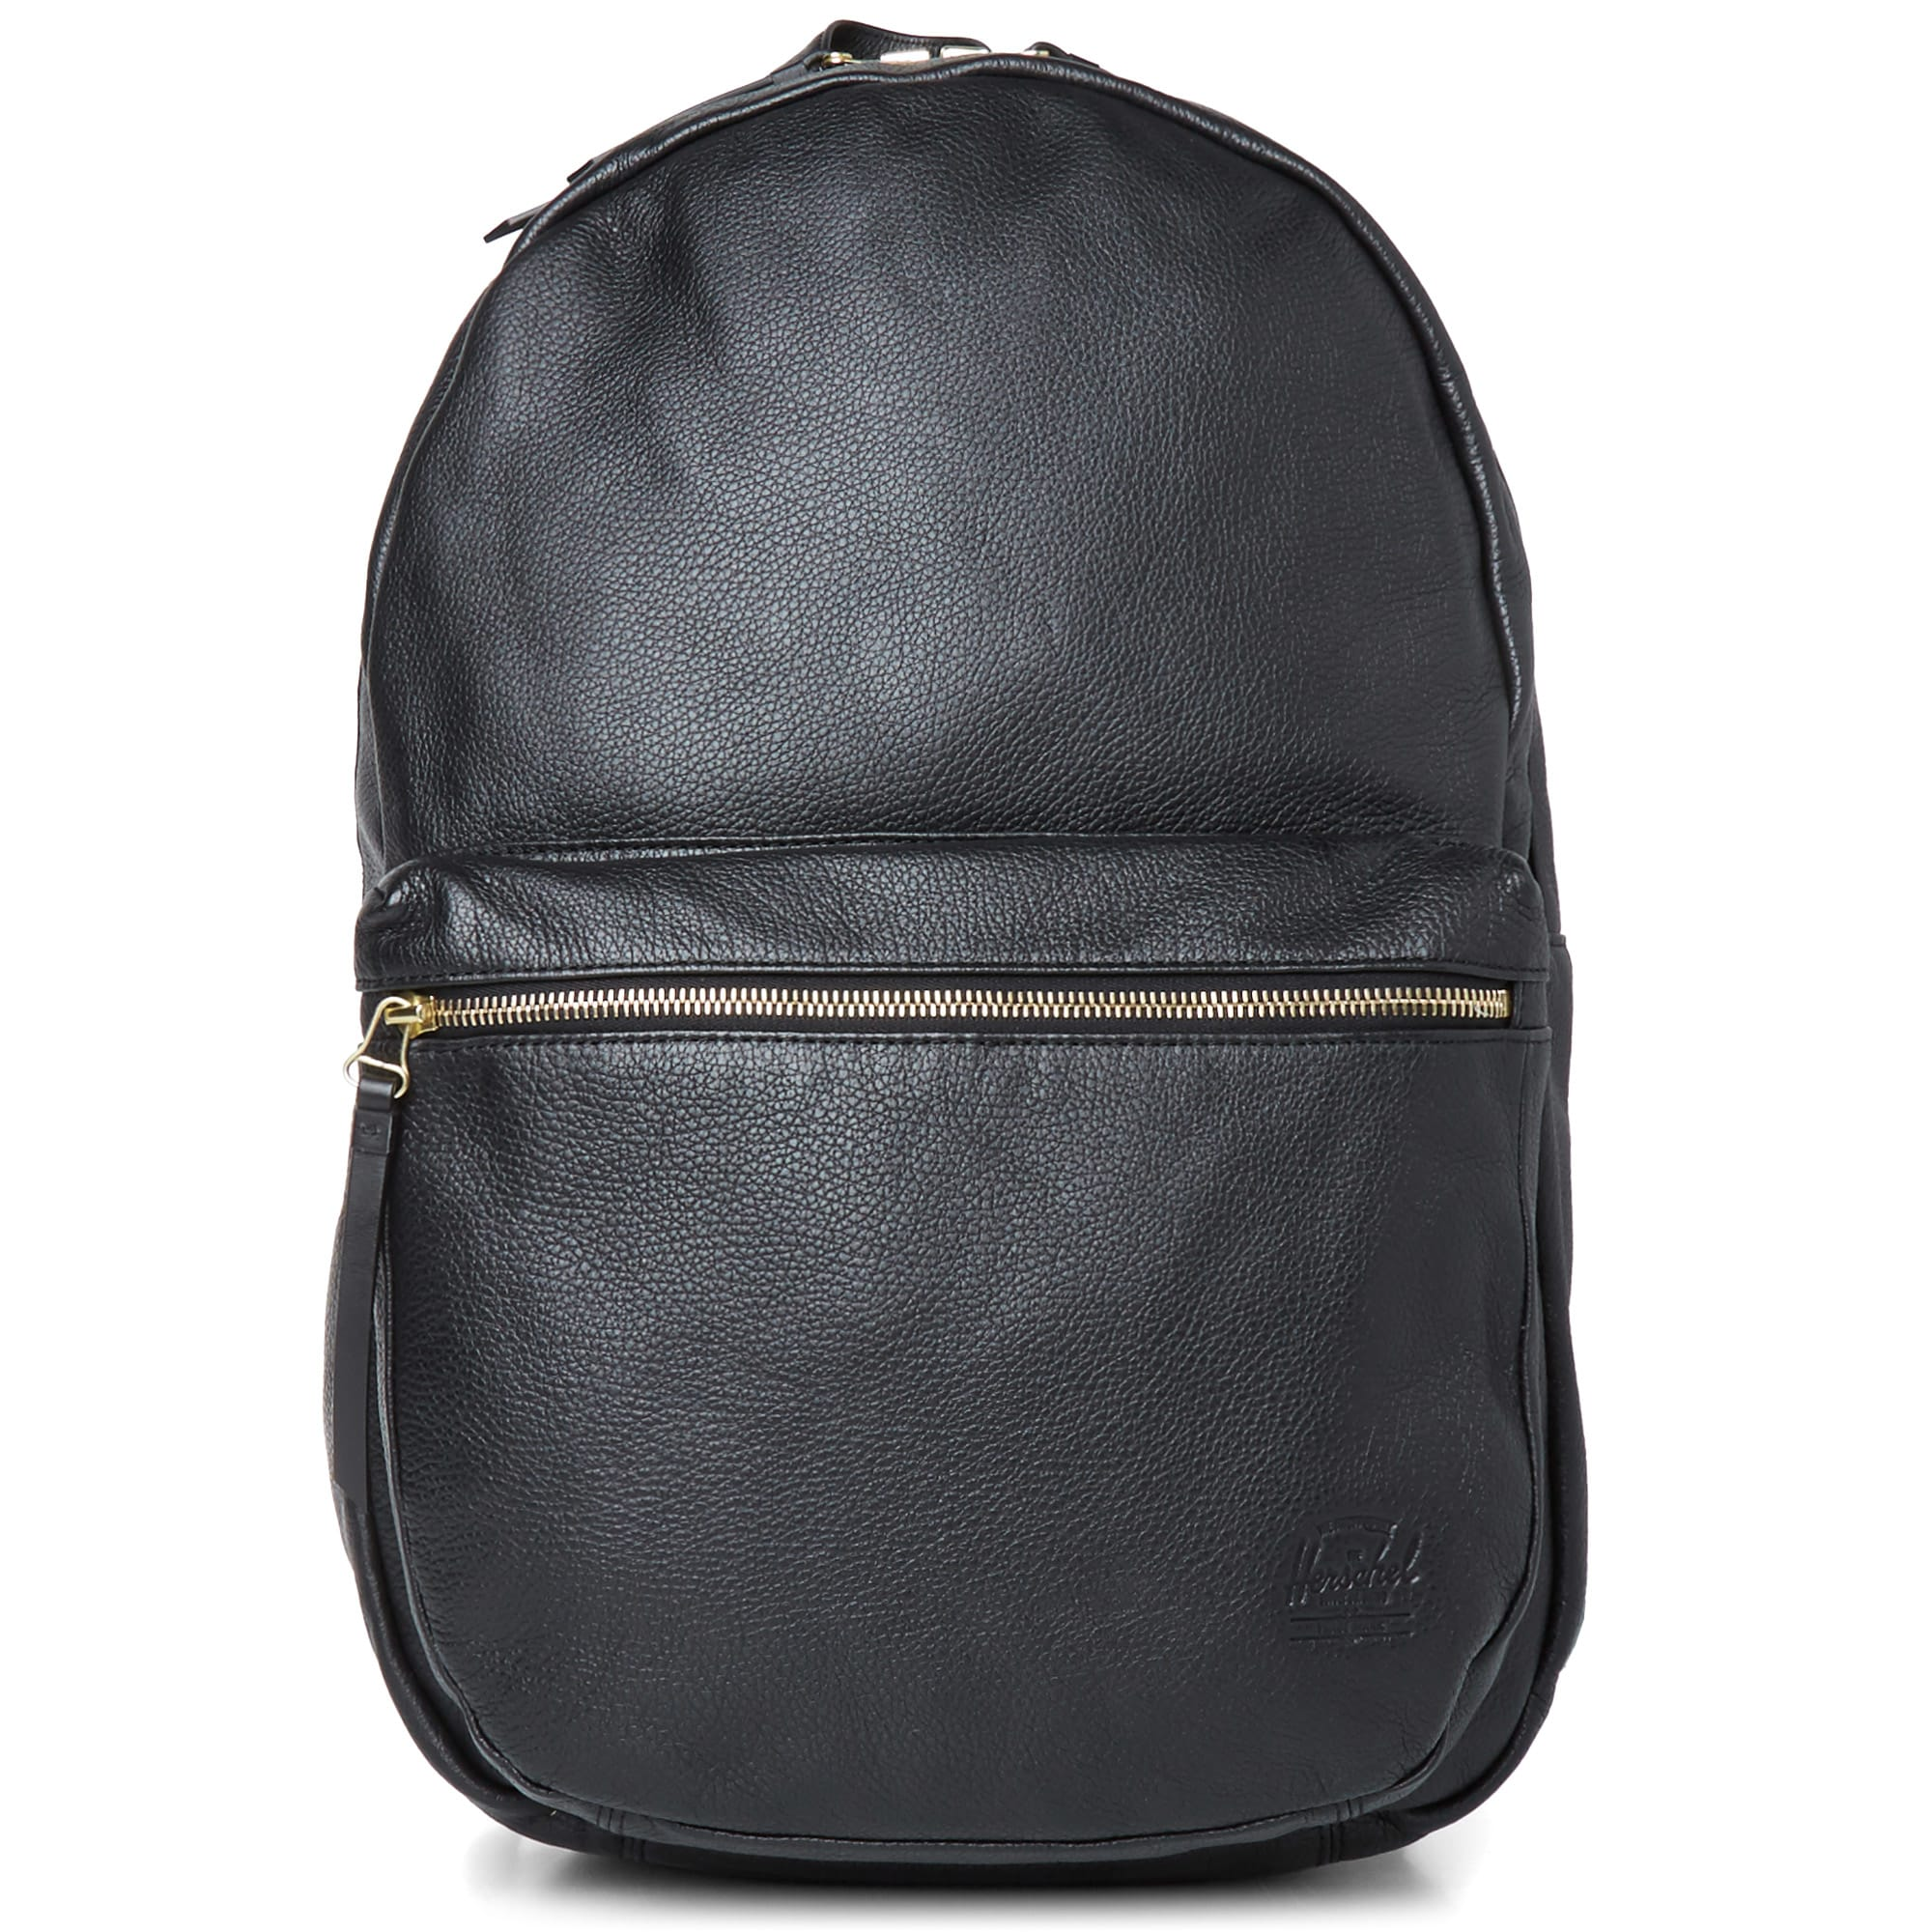 Leather Herschel Backpack - Crazy Backpacks